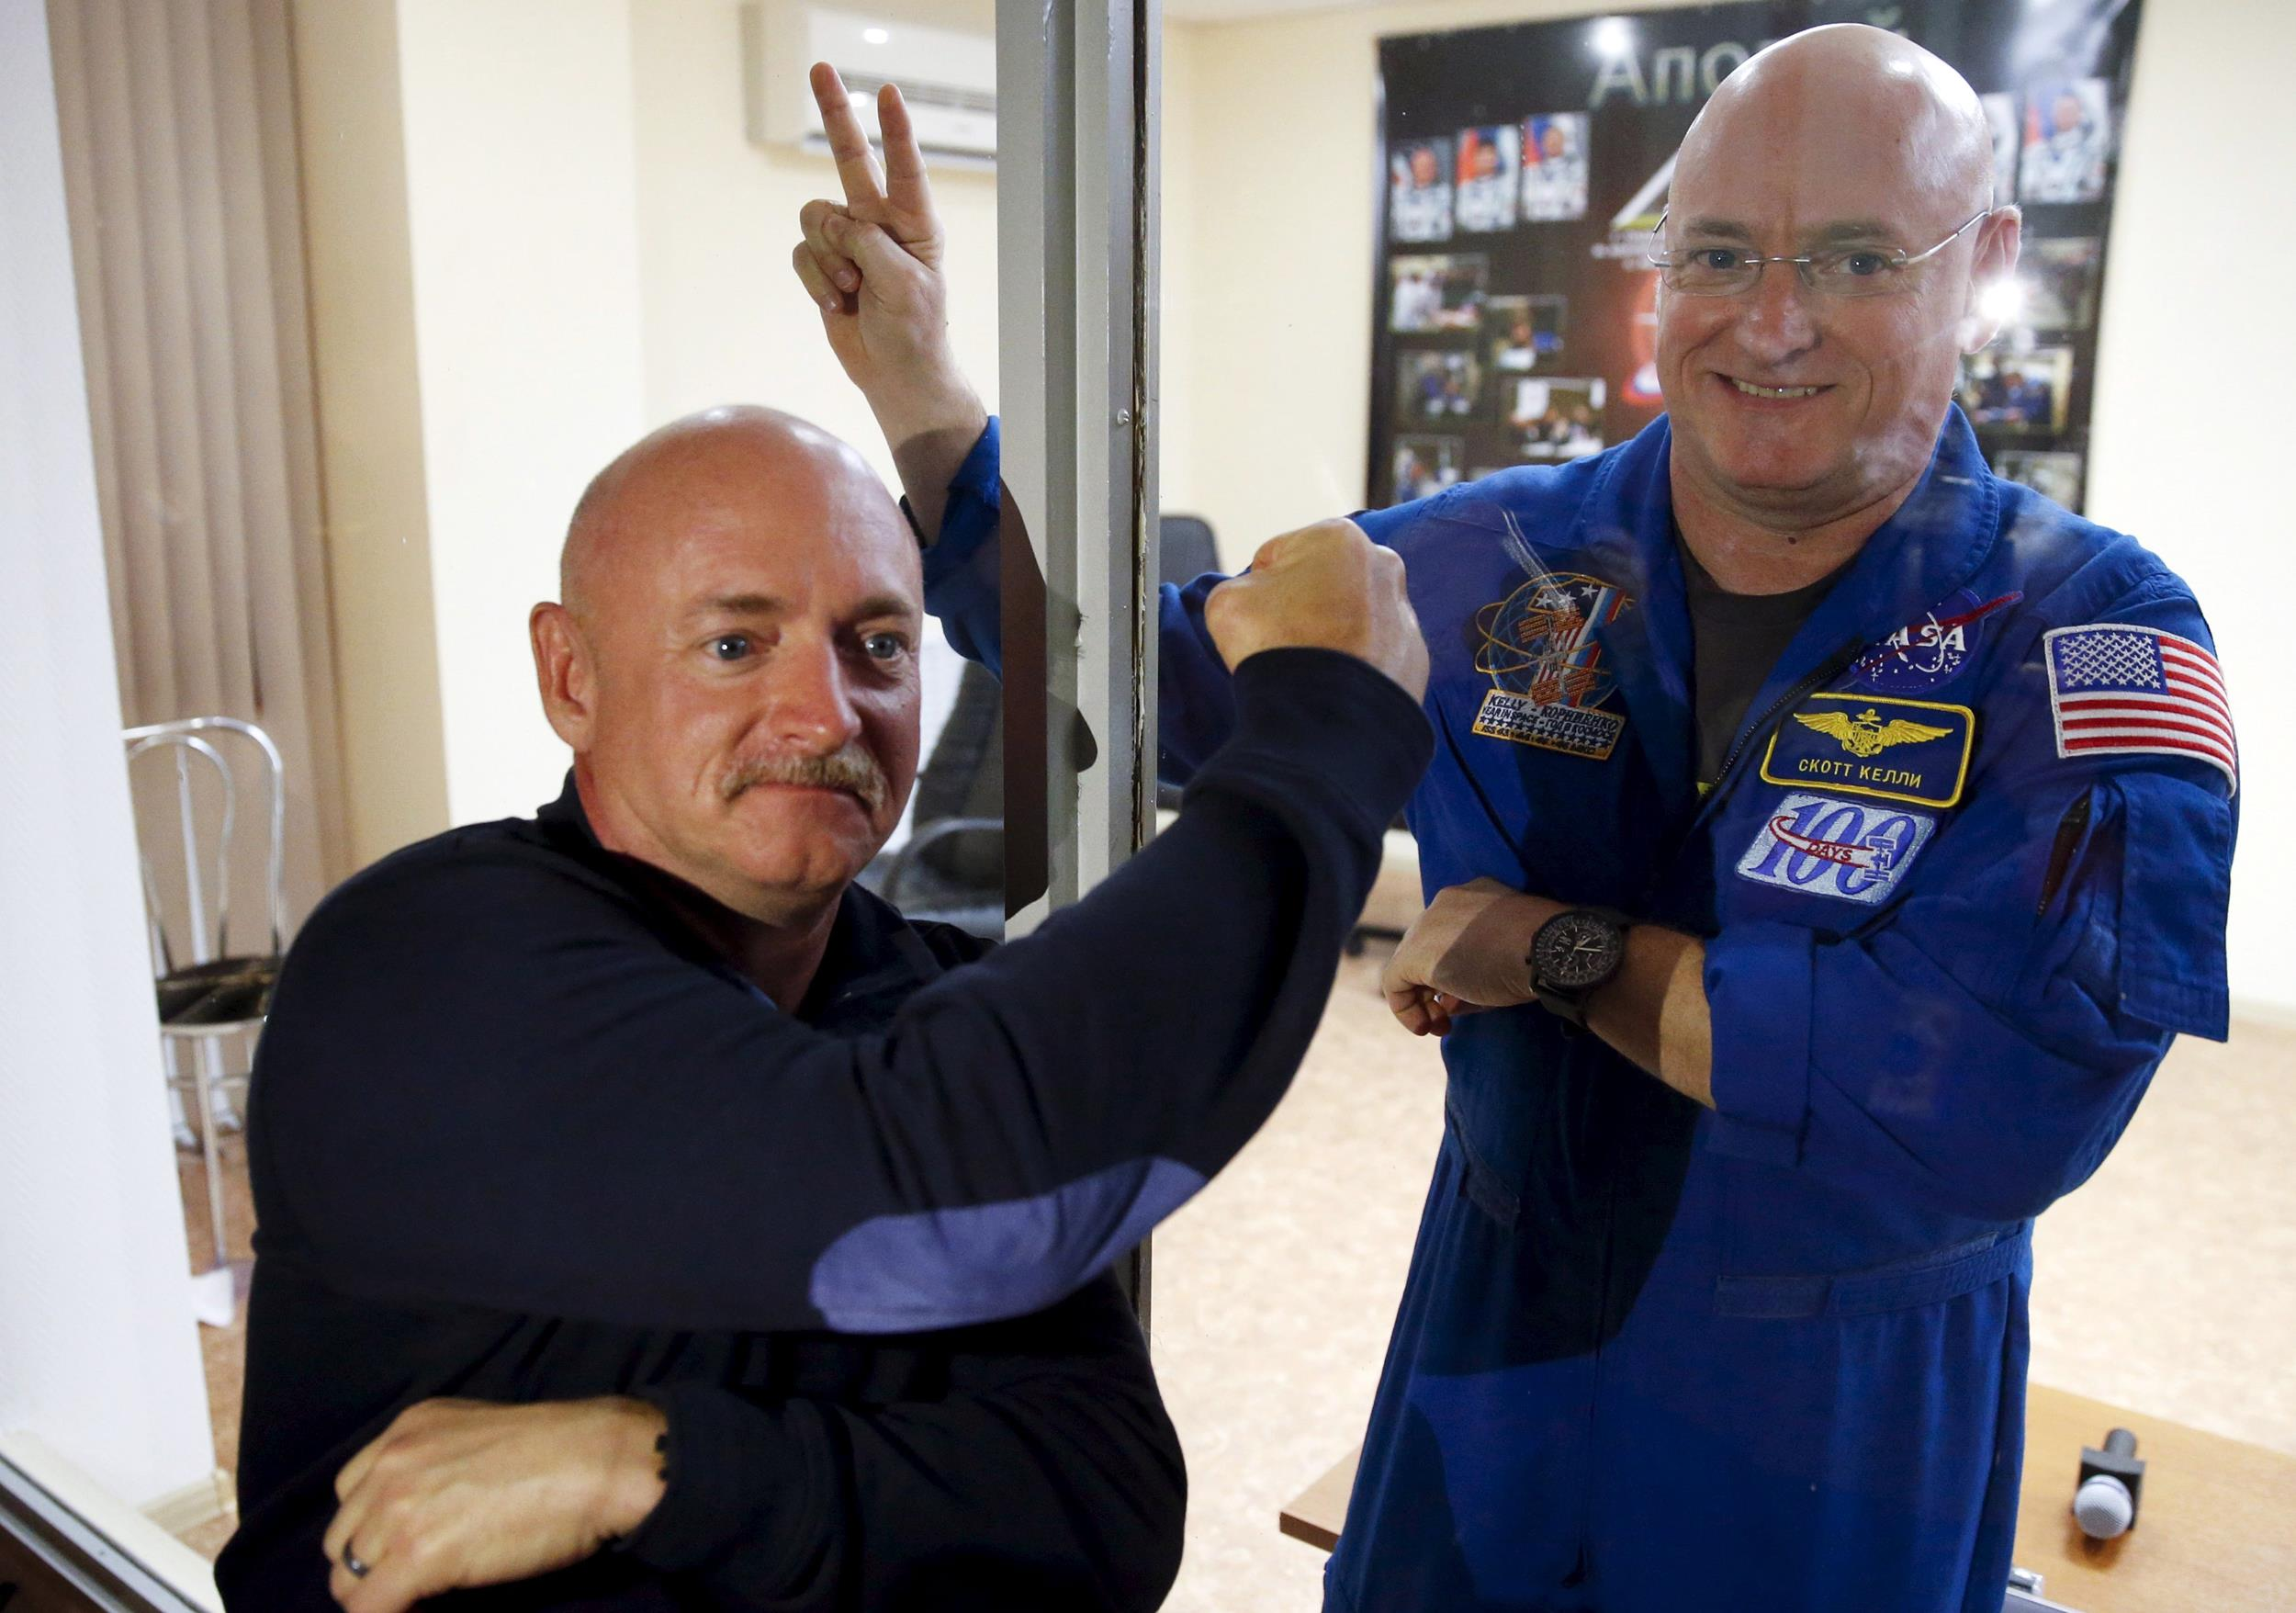 Three astronauts will undertake a year stay in space